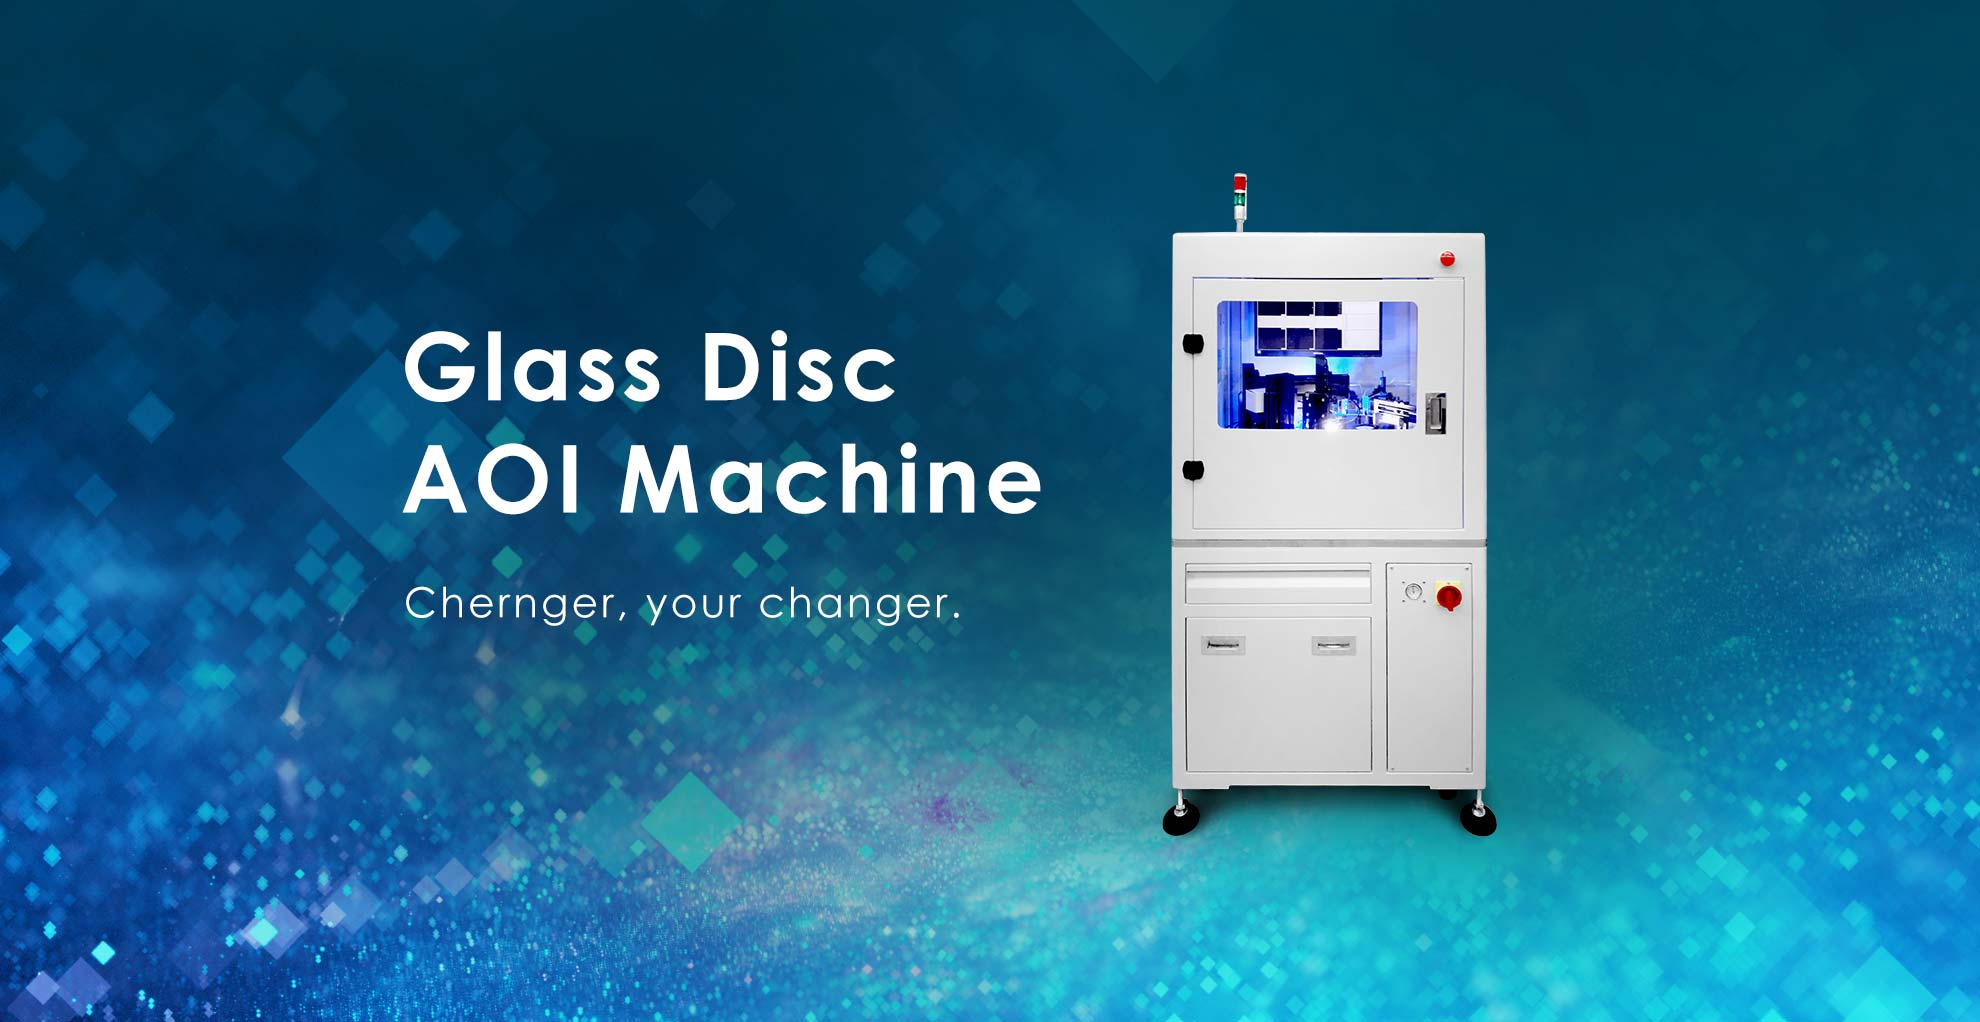 轉盤式檢查機 Glass Disc AOI Machine